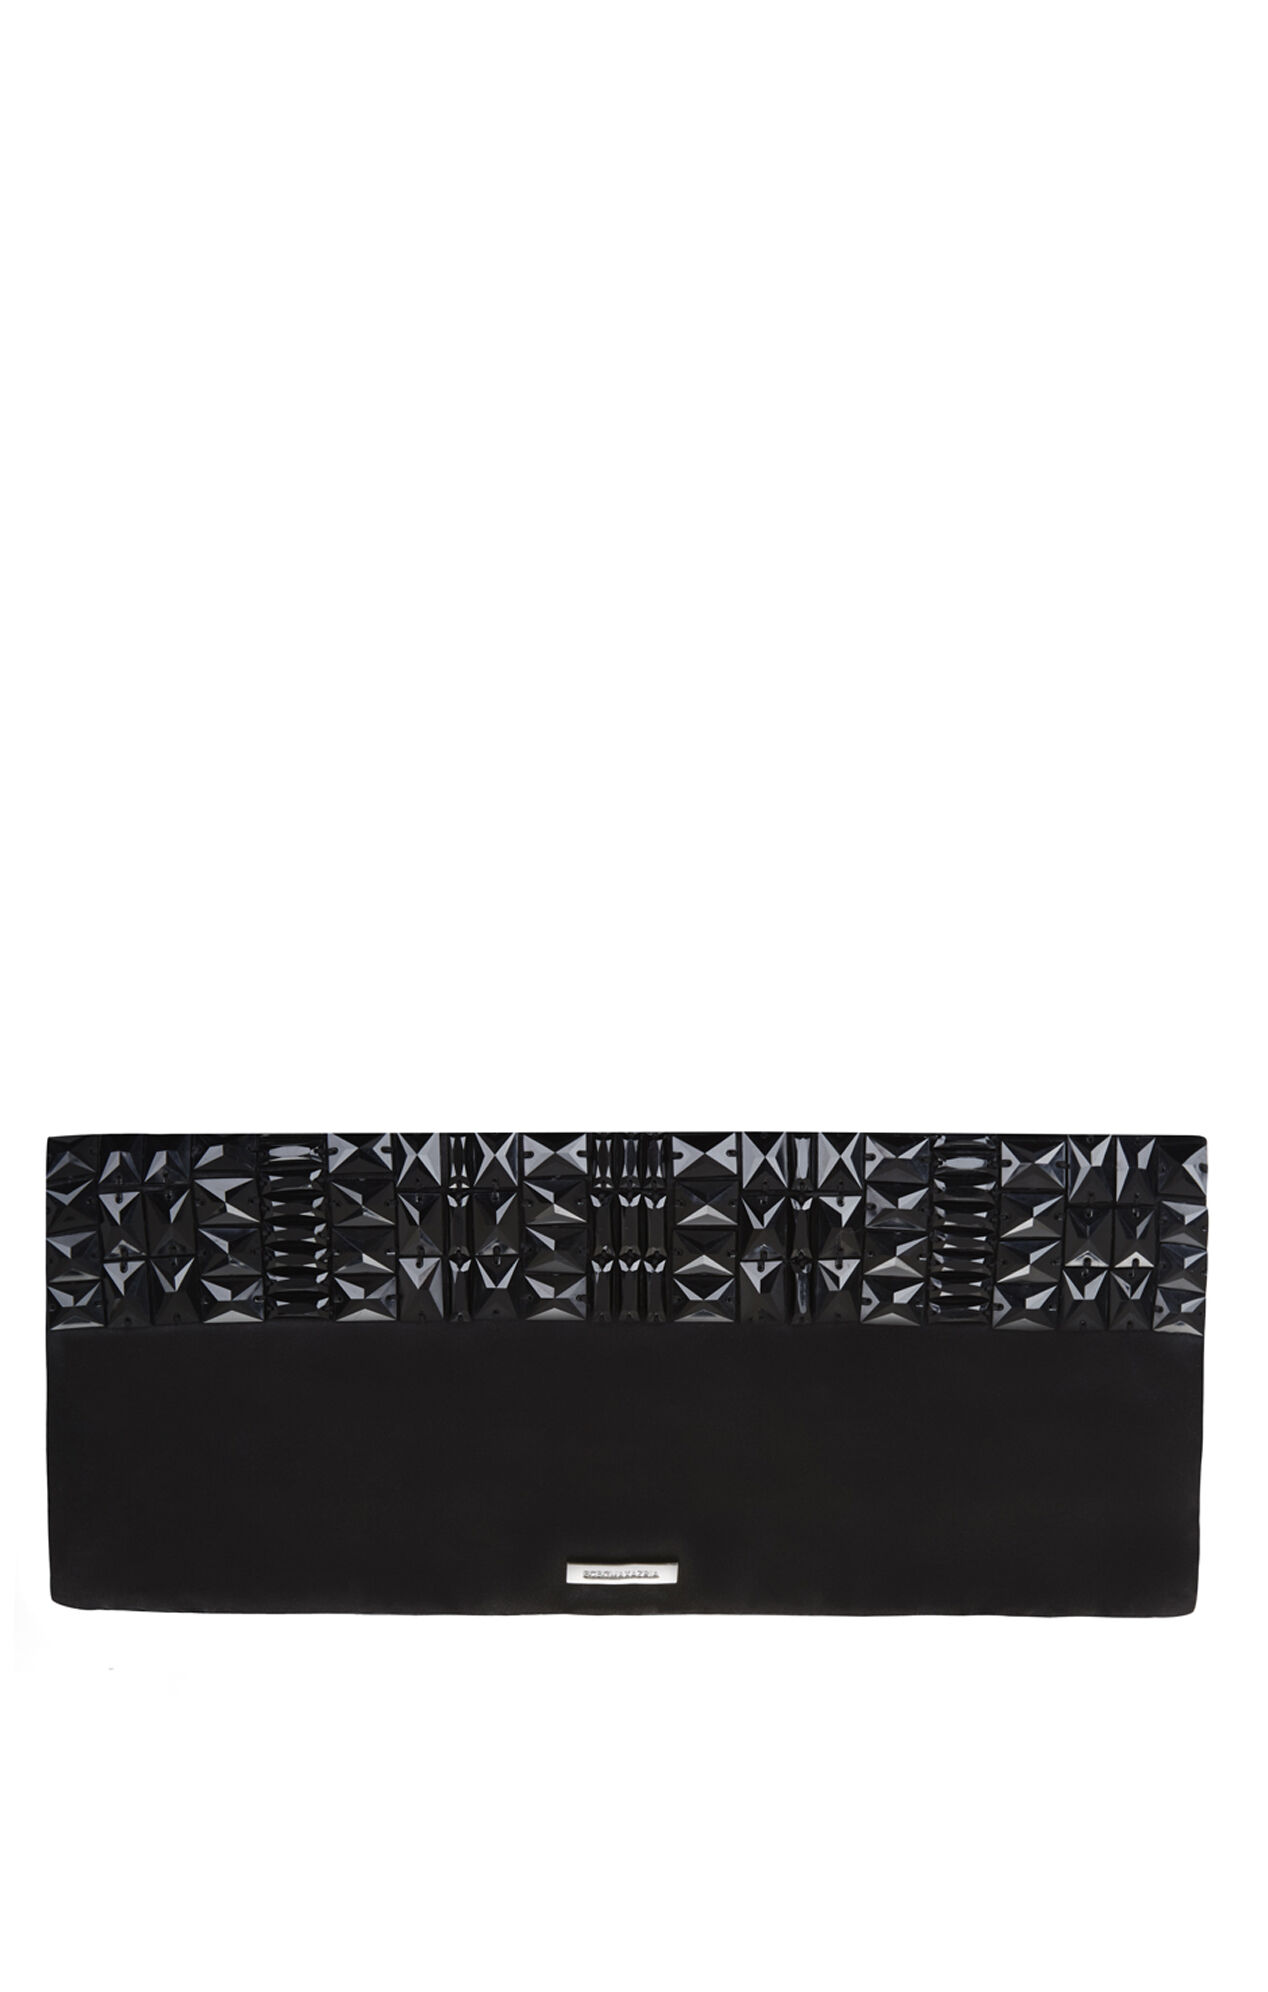 Rhianna Beaded Fold-Over Clutch